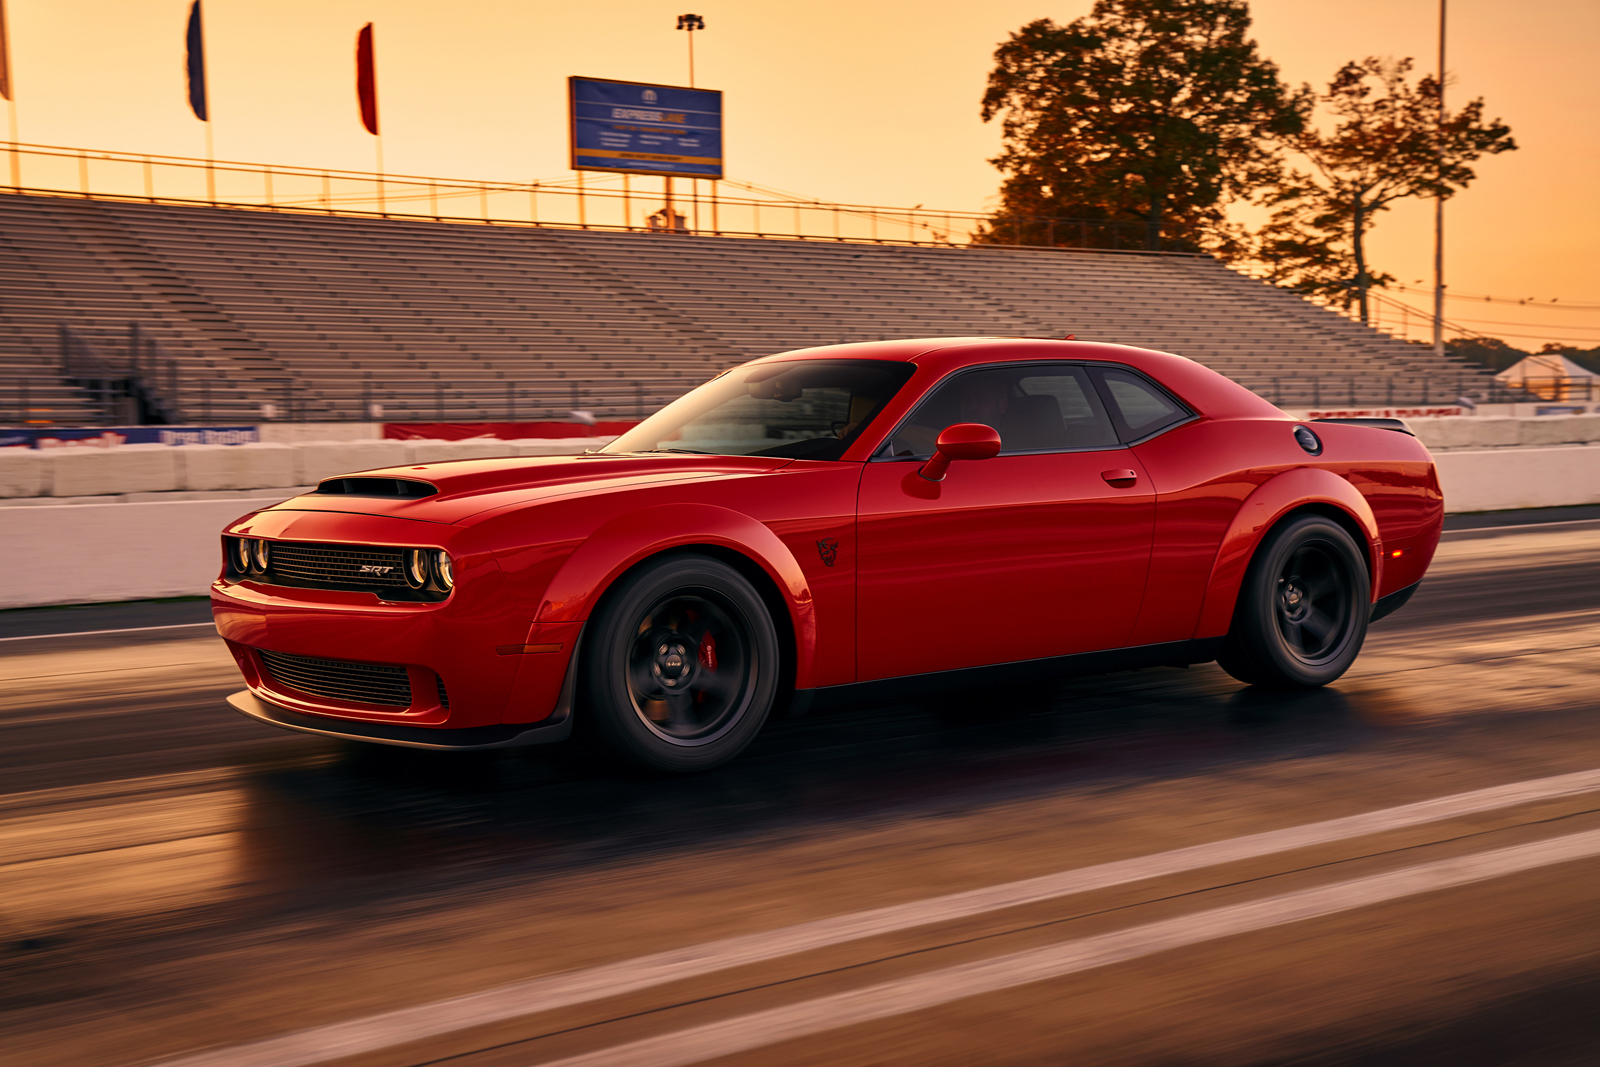 Dodge Charger Hellcat Price >> Will The Dodge Challenger SRT Demon Have 1,023 HP?